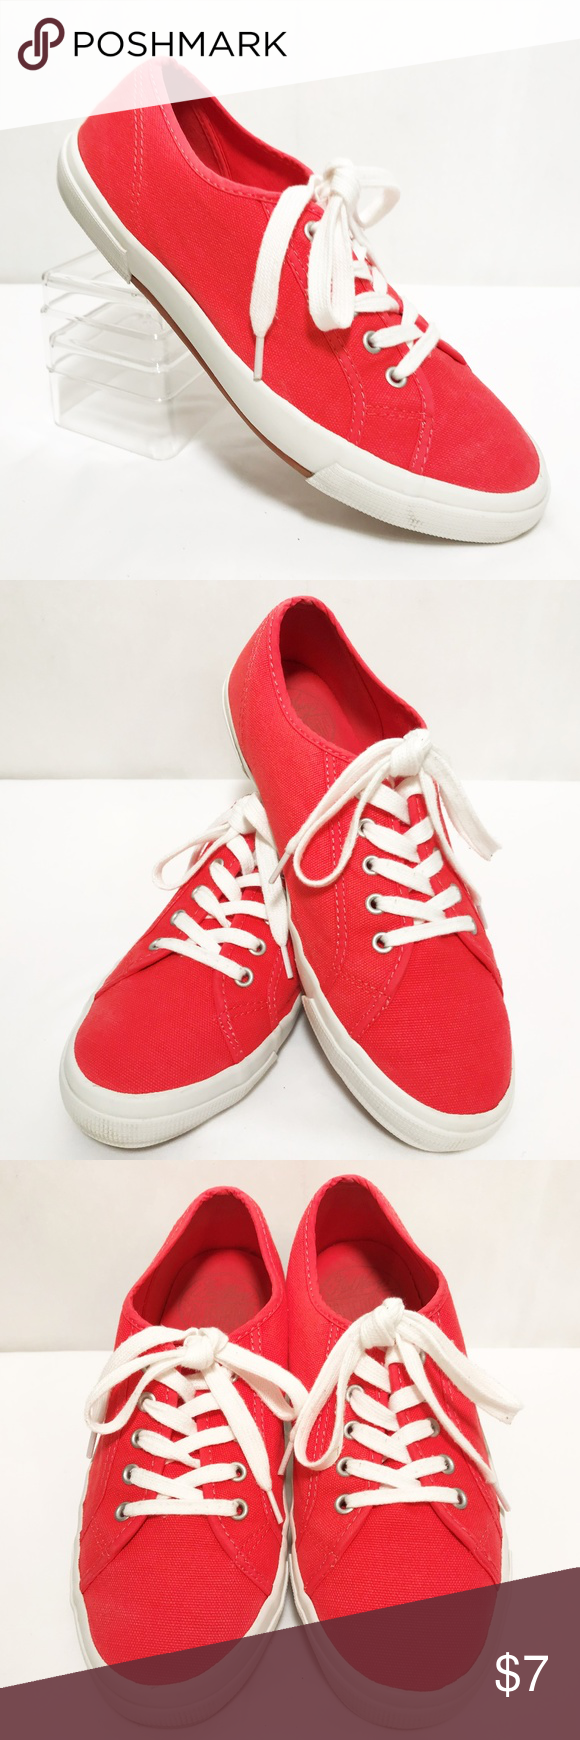 f5873a18a597 Old Navy Coral Tennis Shoes Womens Sz 9 Old Navy Coral Tennis Shoes A15-18